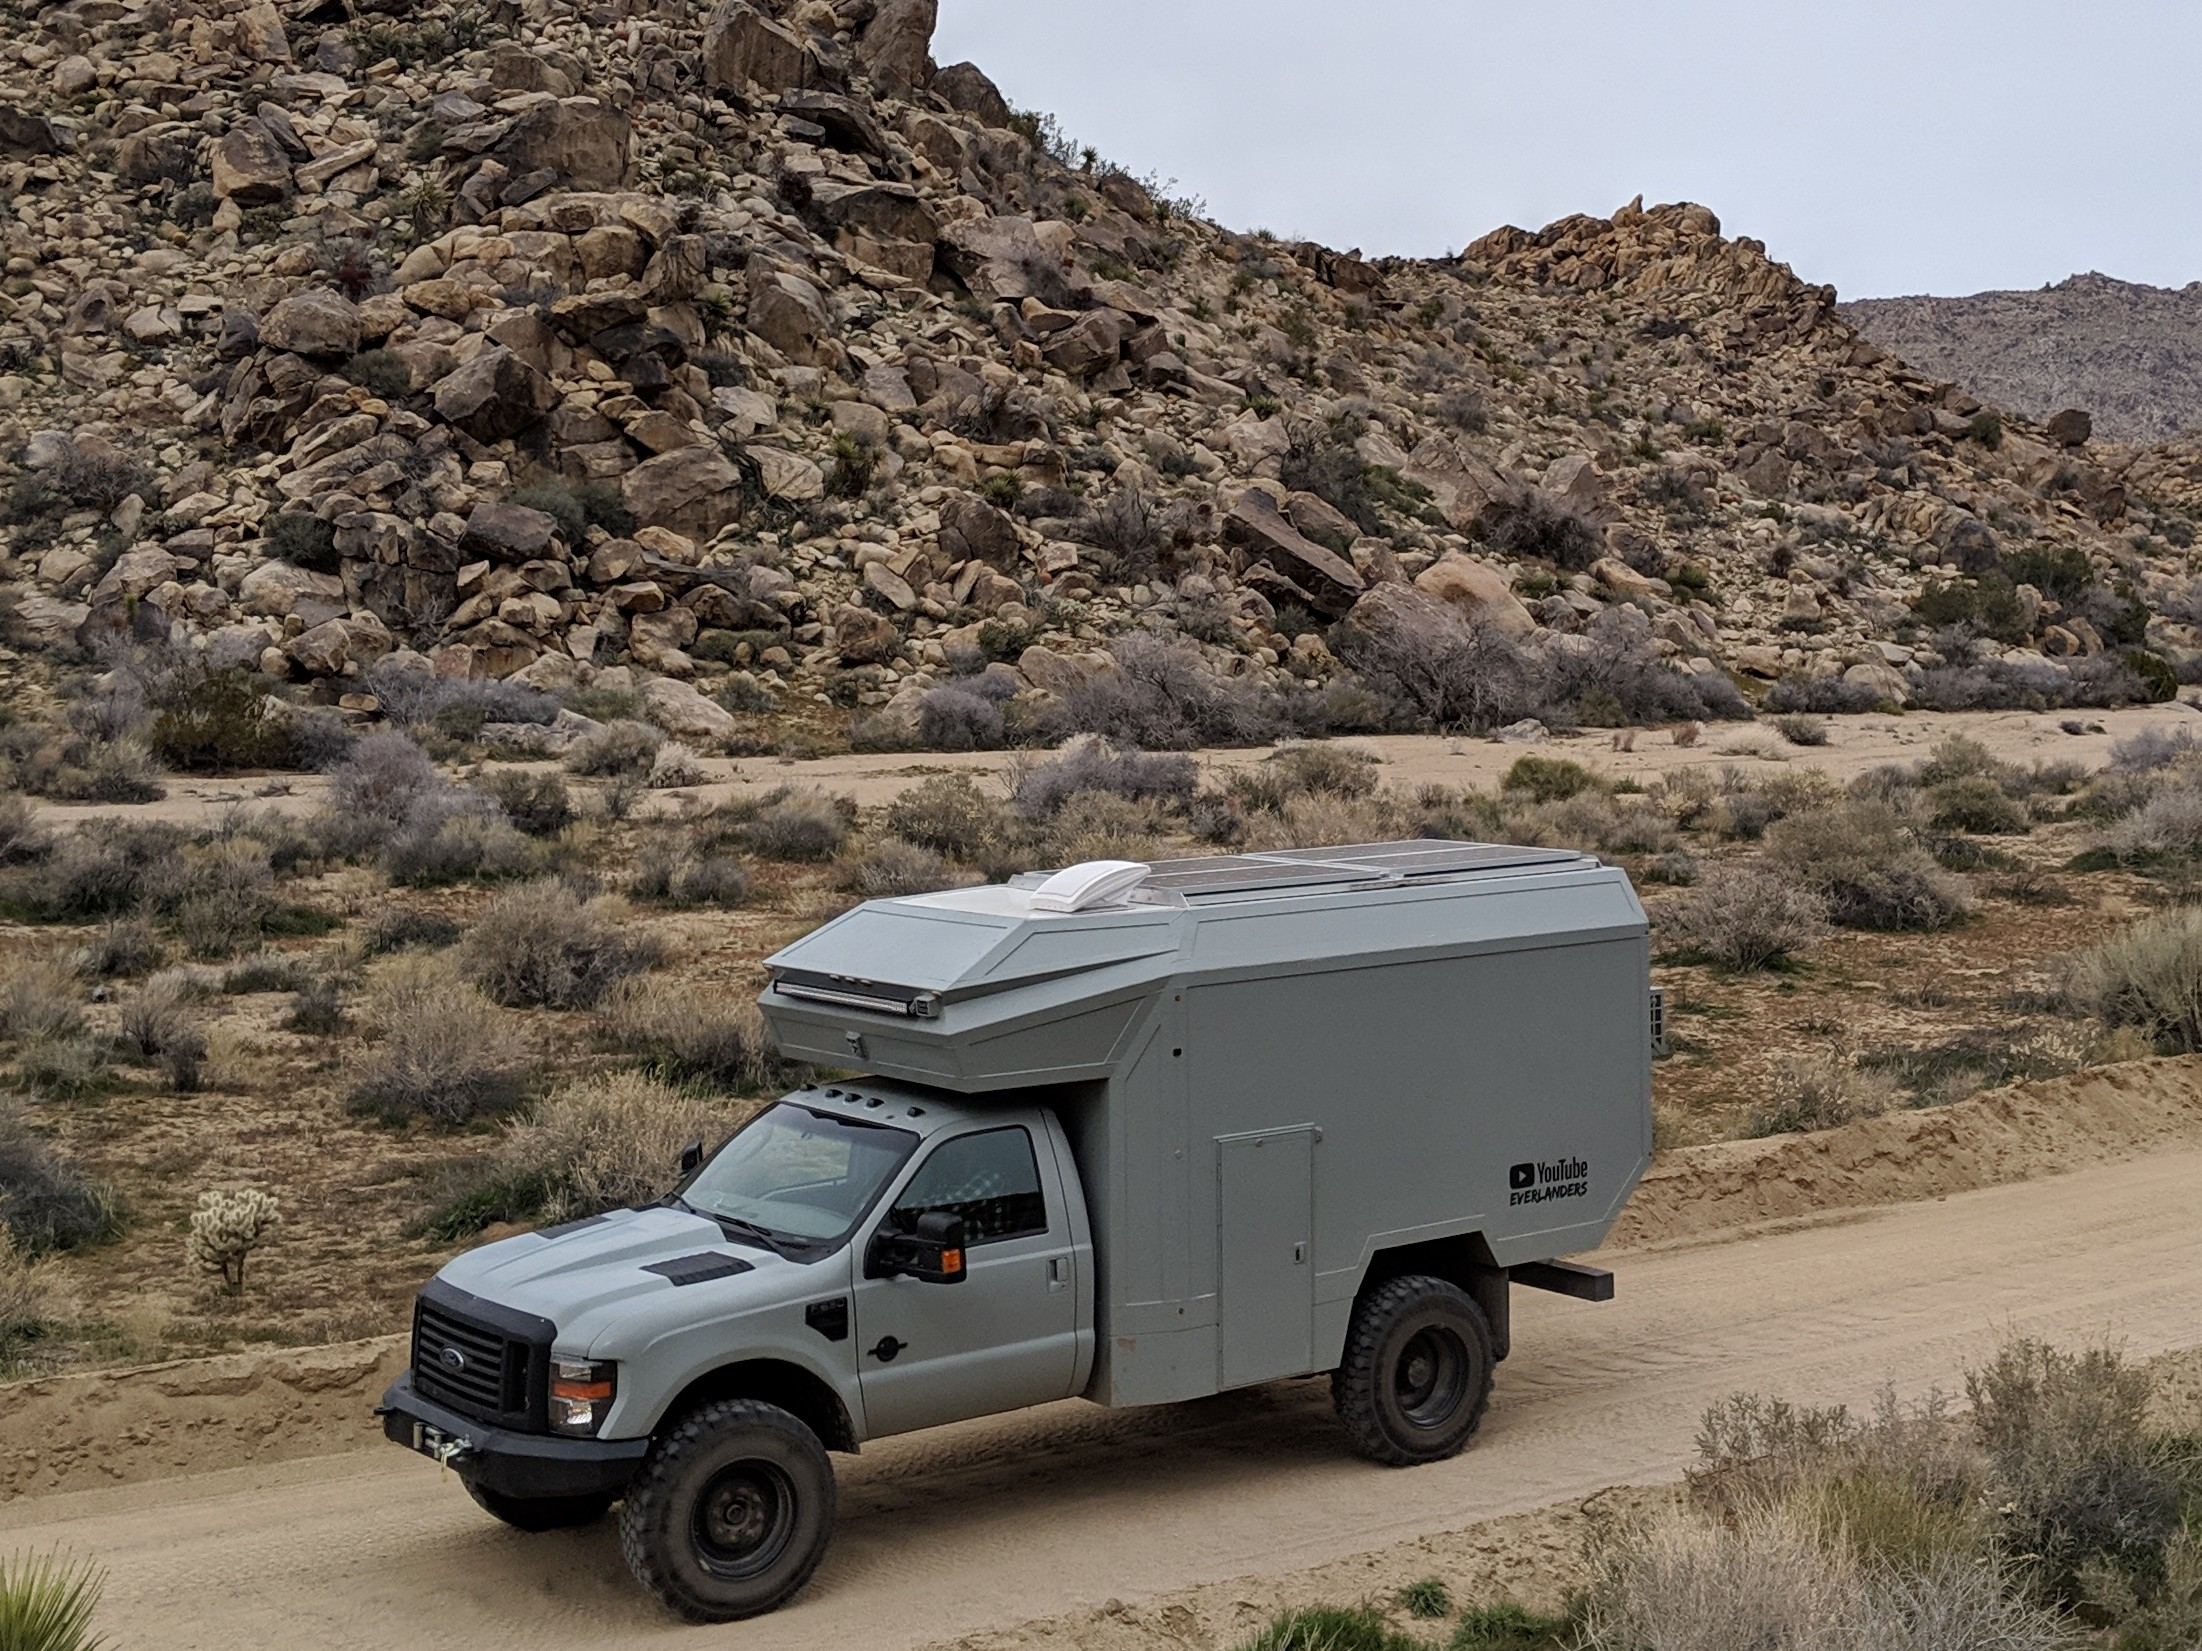 The Everlander is a custom self built composite panel overland rig built on a 7.3L Diesel 4x4 F-550 chassis. 1500 watts of solar on an expanding rooftop array provides the sole source of energy for the habitation box. Canadian duo, Jason and Kara are currently on a 9 month trip through Canada, US and Mexico.